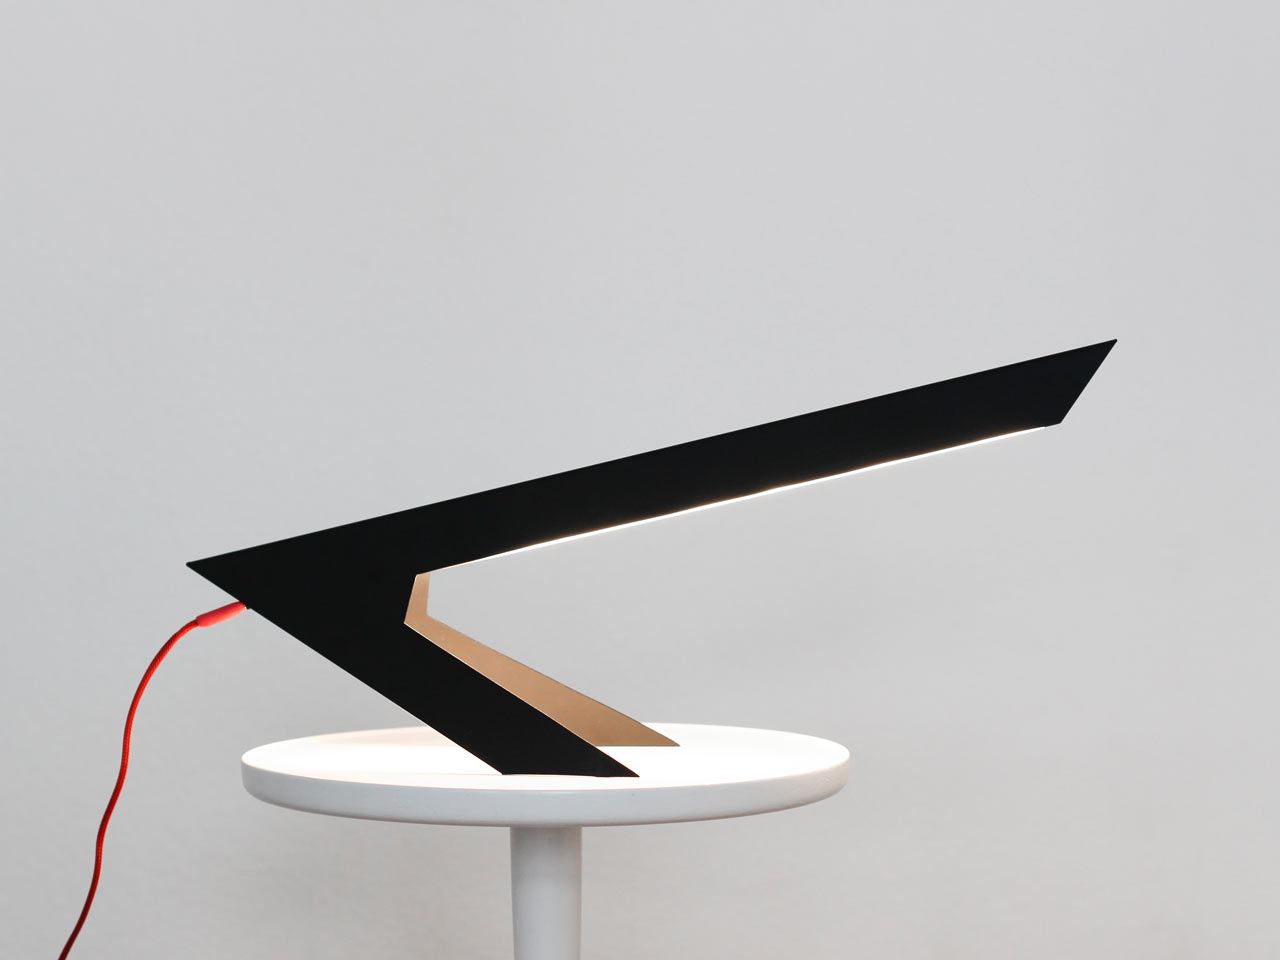 Blackbird Lamp Looks Like an Abstract Bird Perched on Two Feet